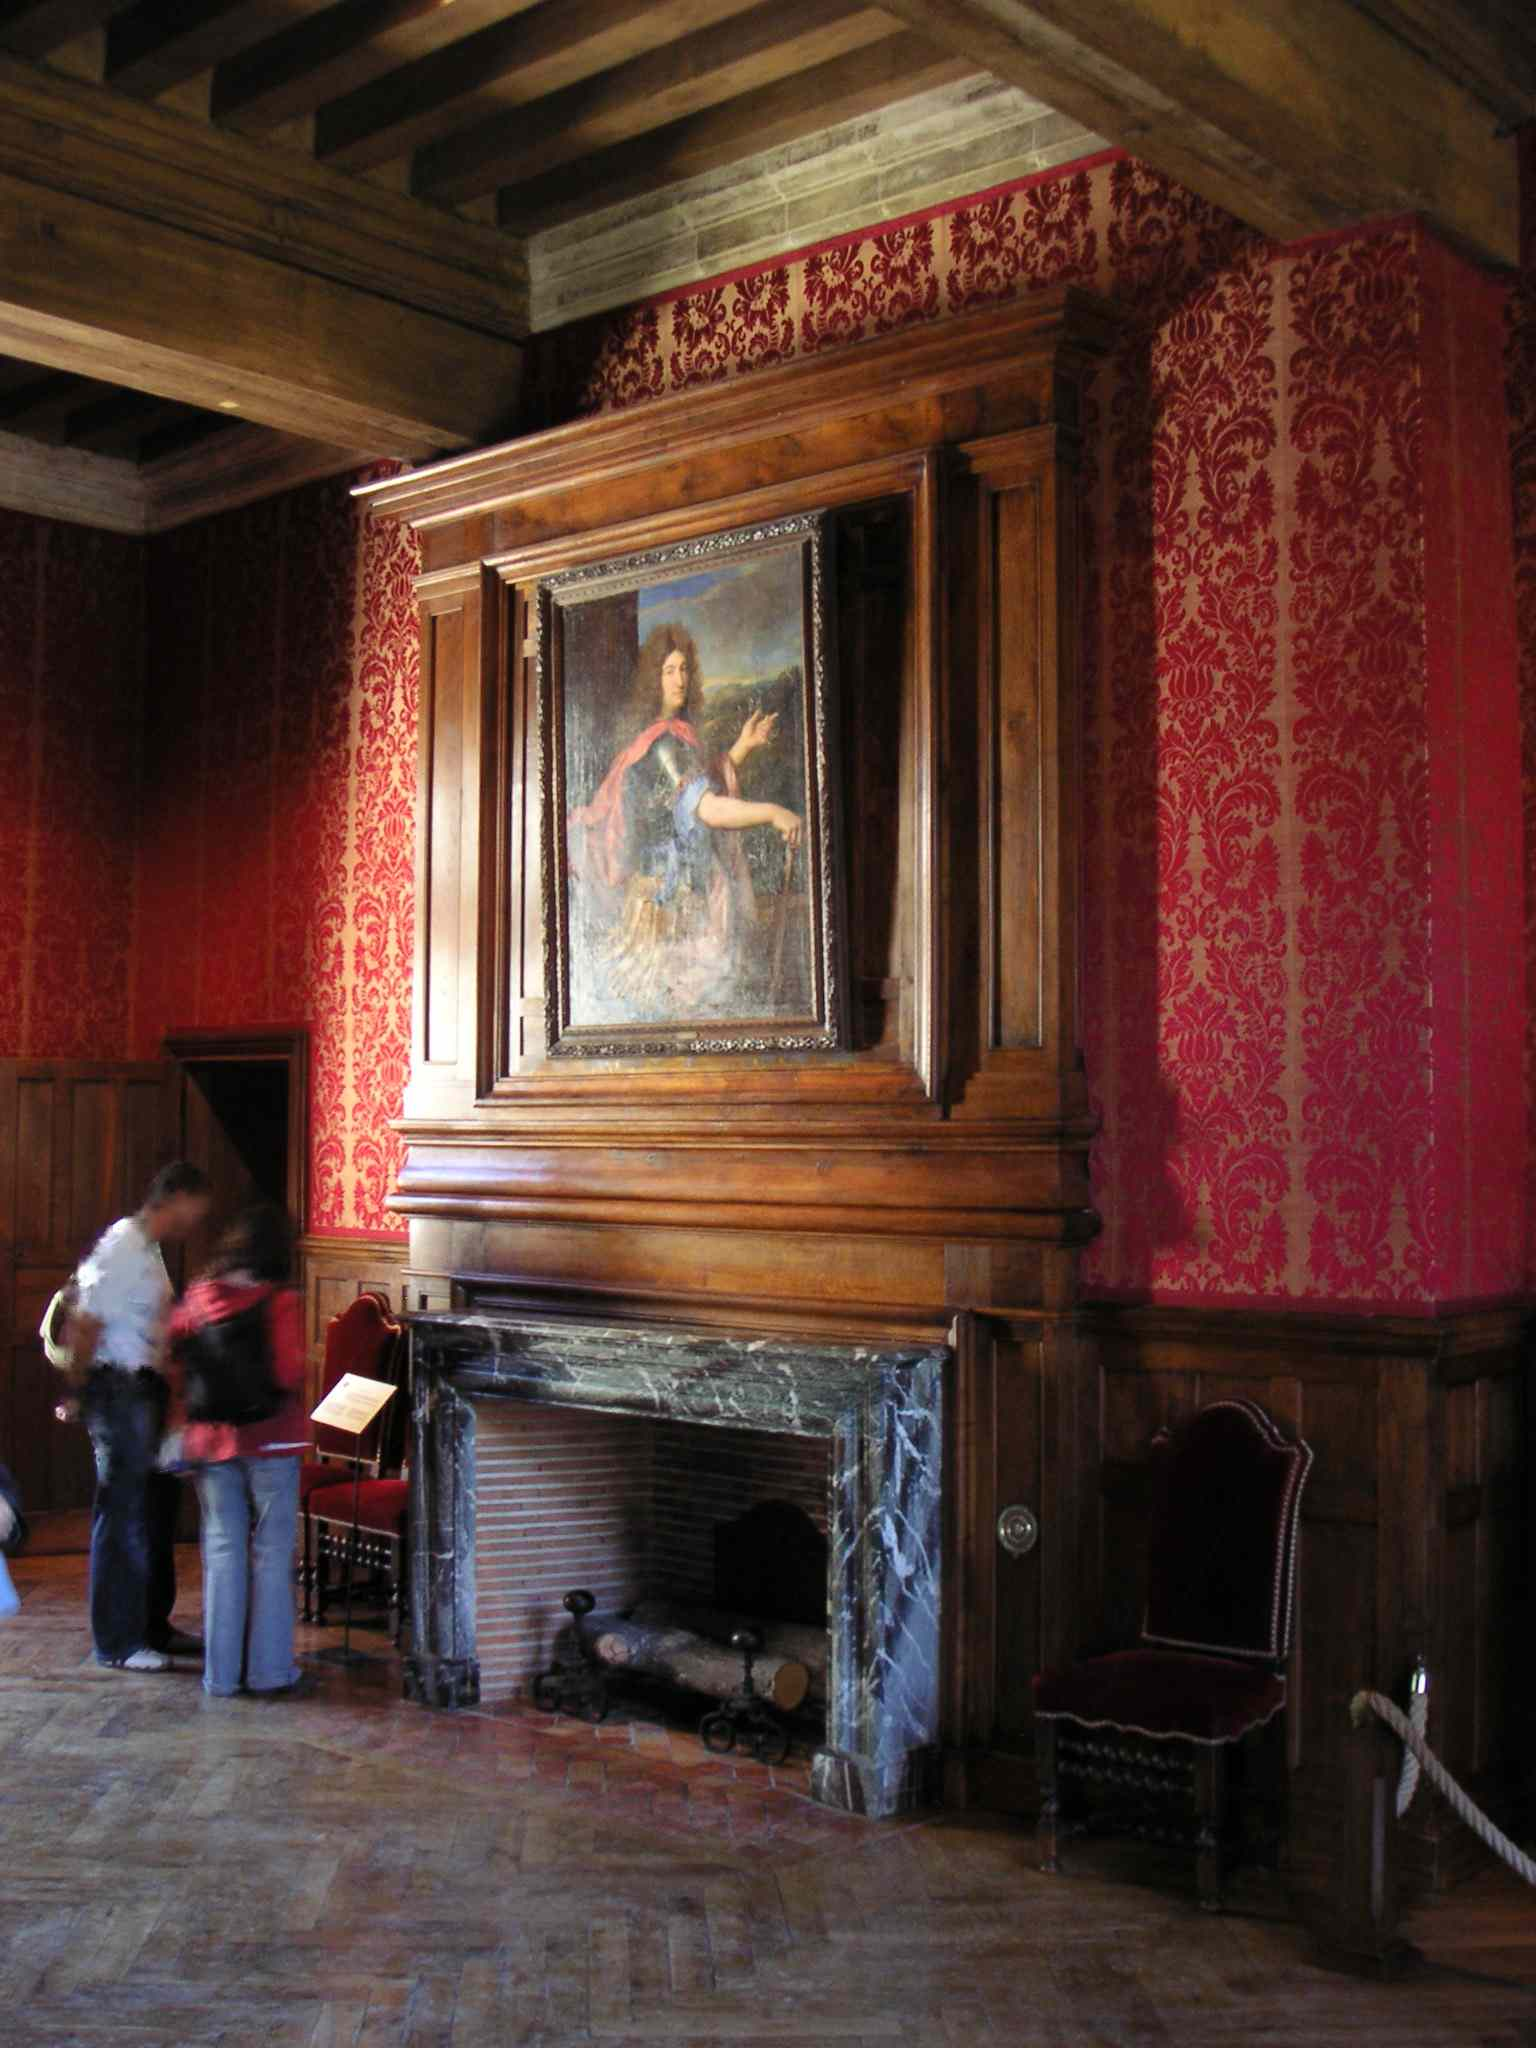 Chateau d 39 azay le rideau for Rideau interieur